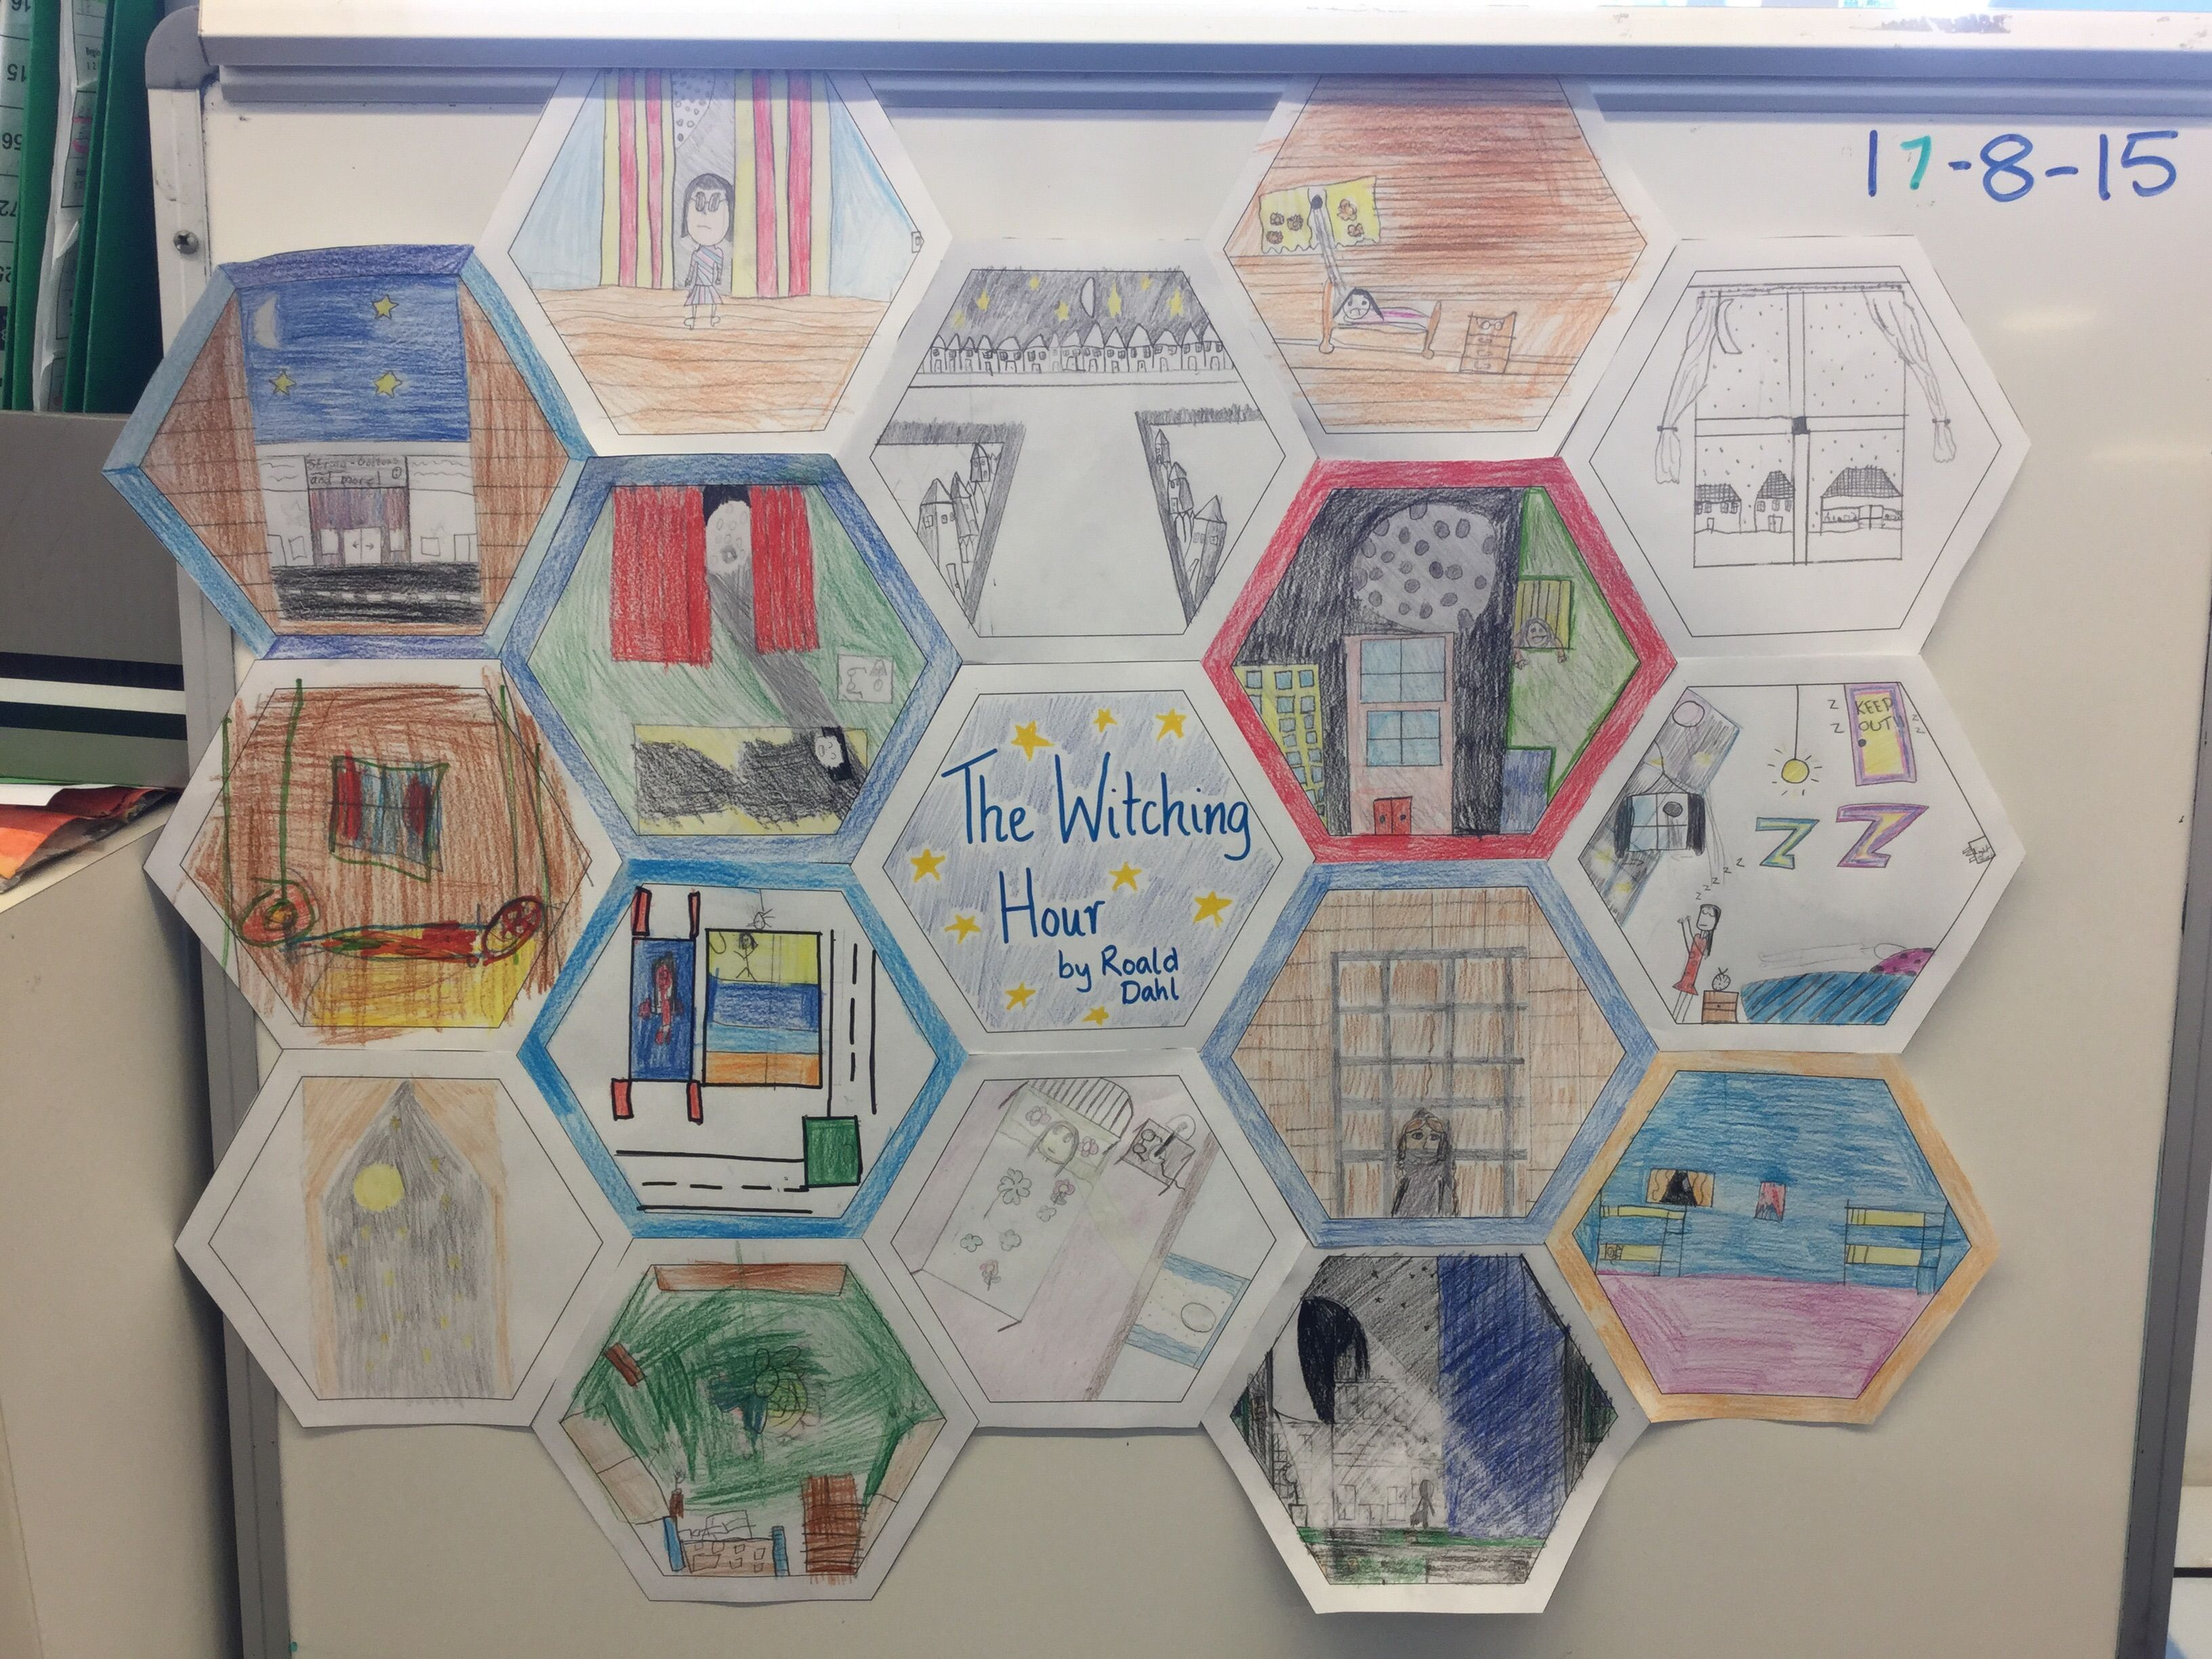 Visualising Quilt Read Books Passage Poem And As Students To Draw A Picture Of What They